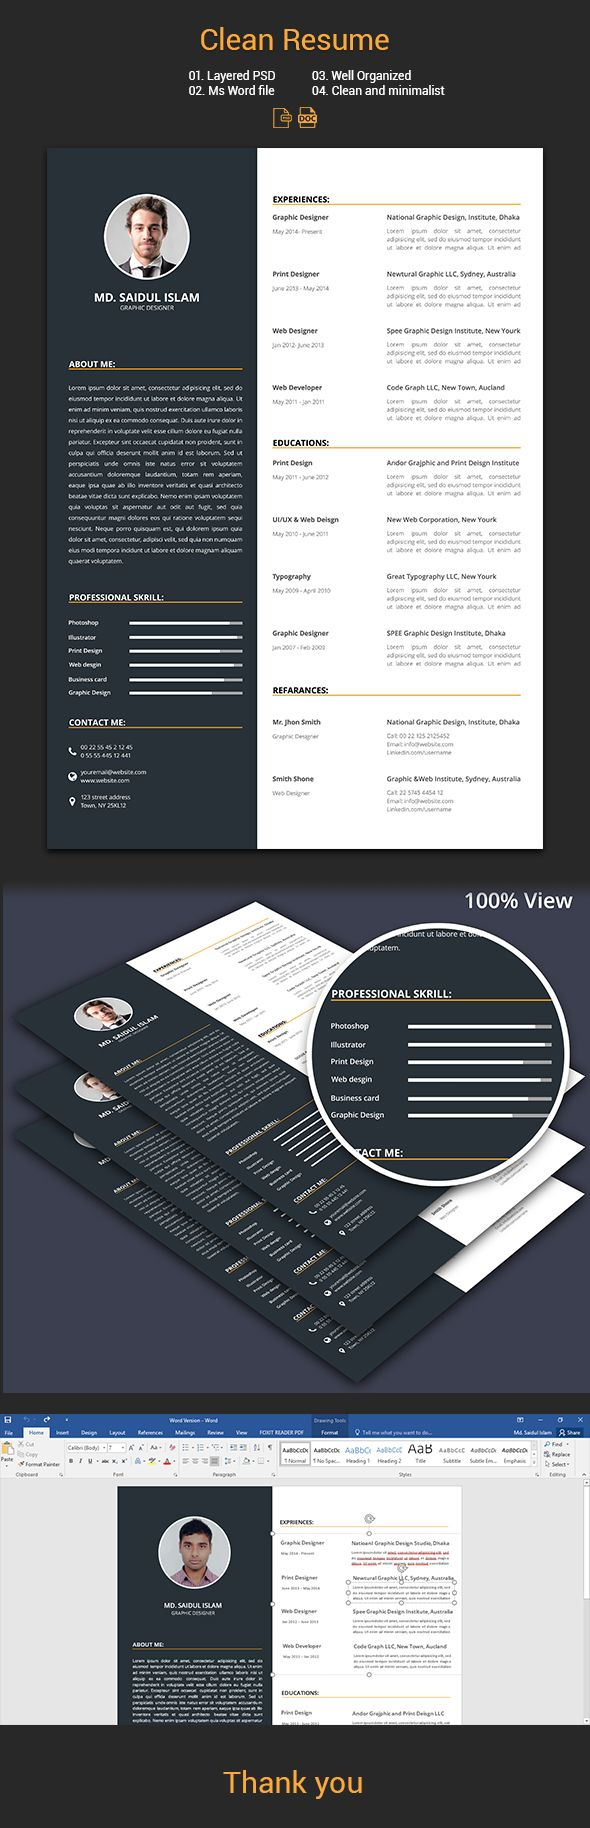 Cv Templates Design%0A Get the best  resume  cv for your own business and  job interview